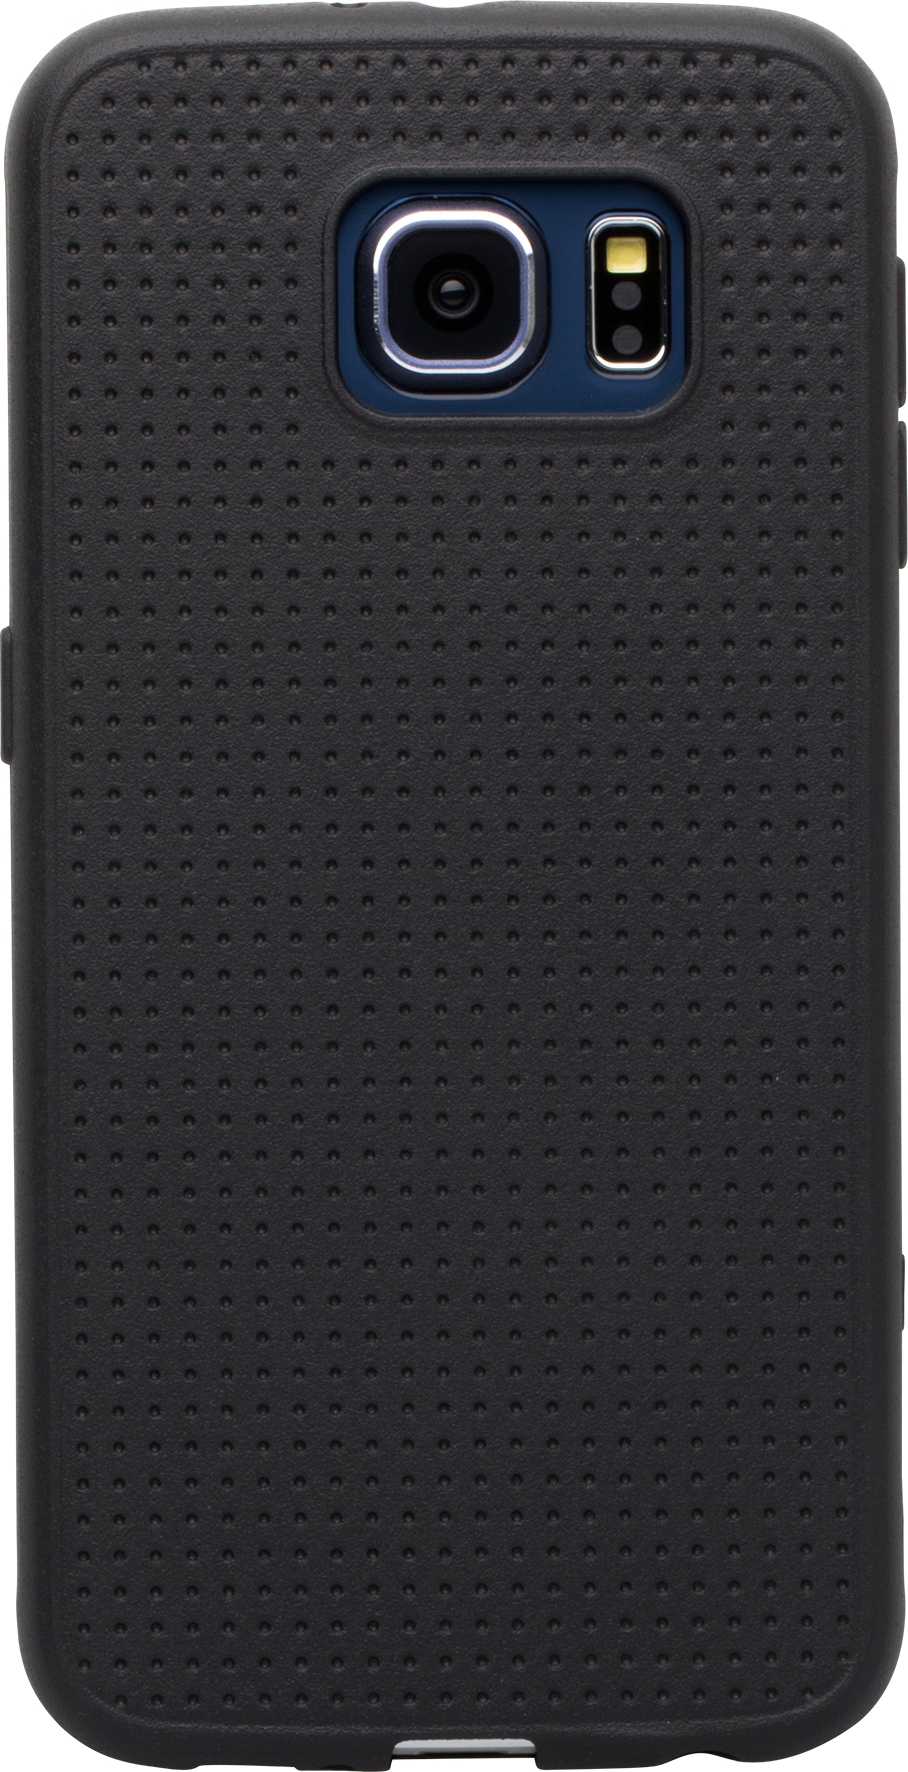 Läs mer om iZound Dot Case Samsung Galaxy S6 White